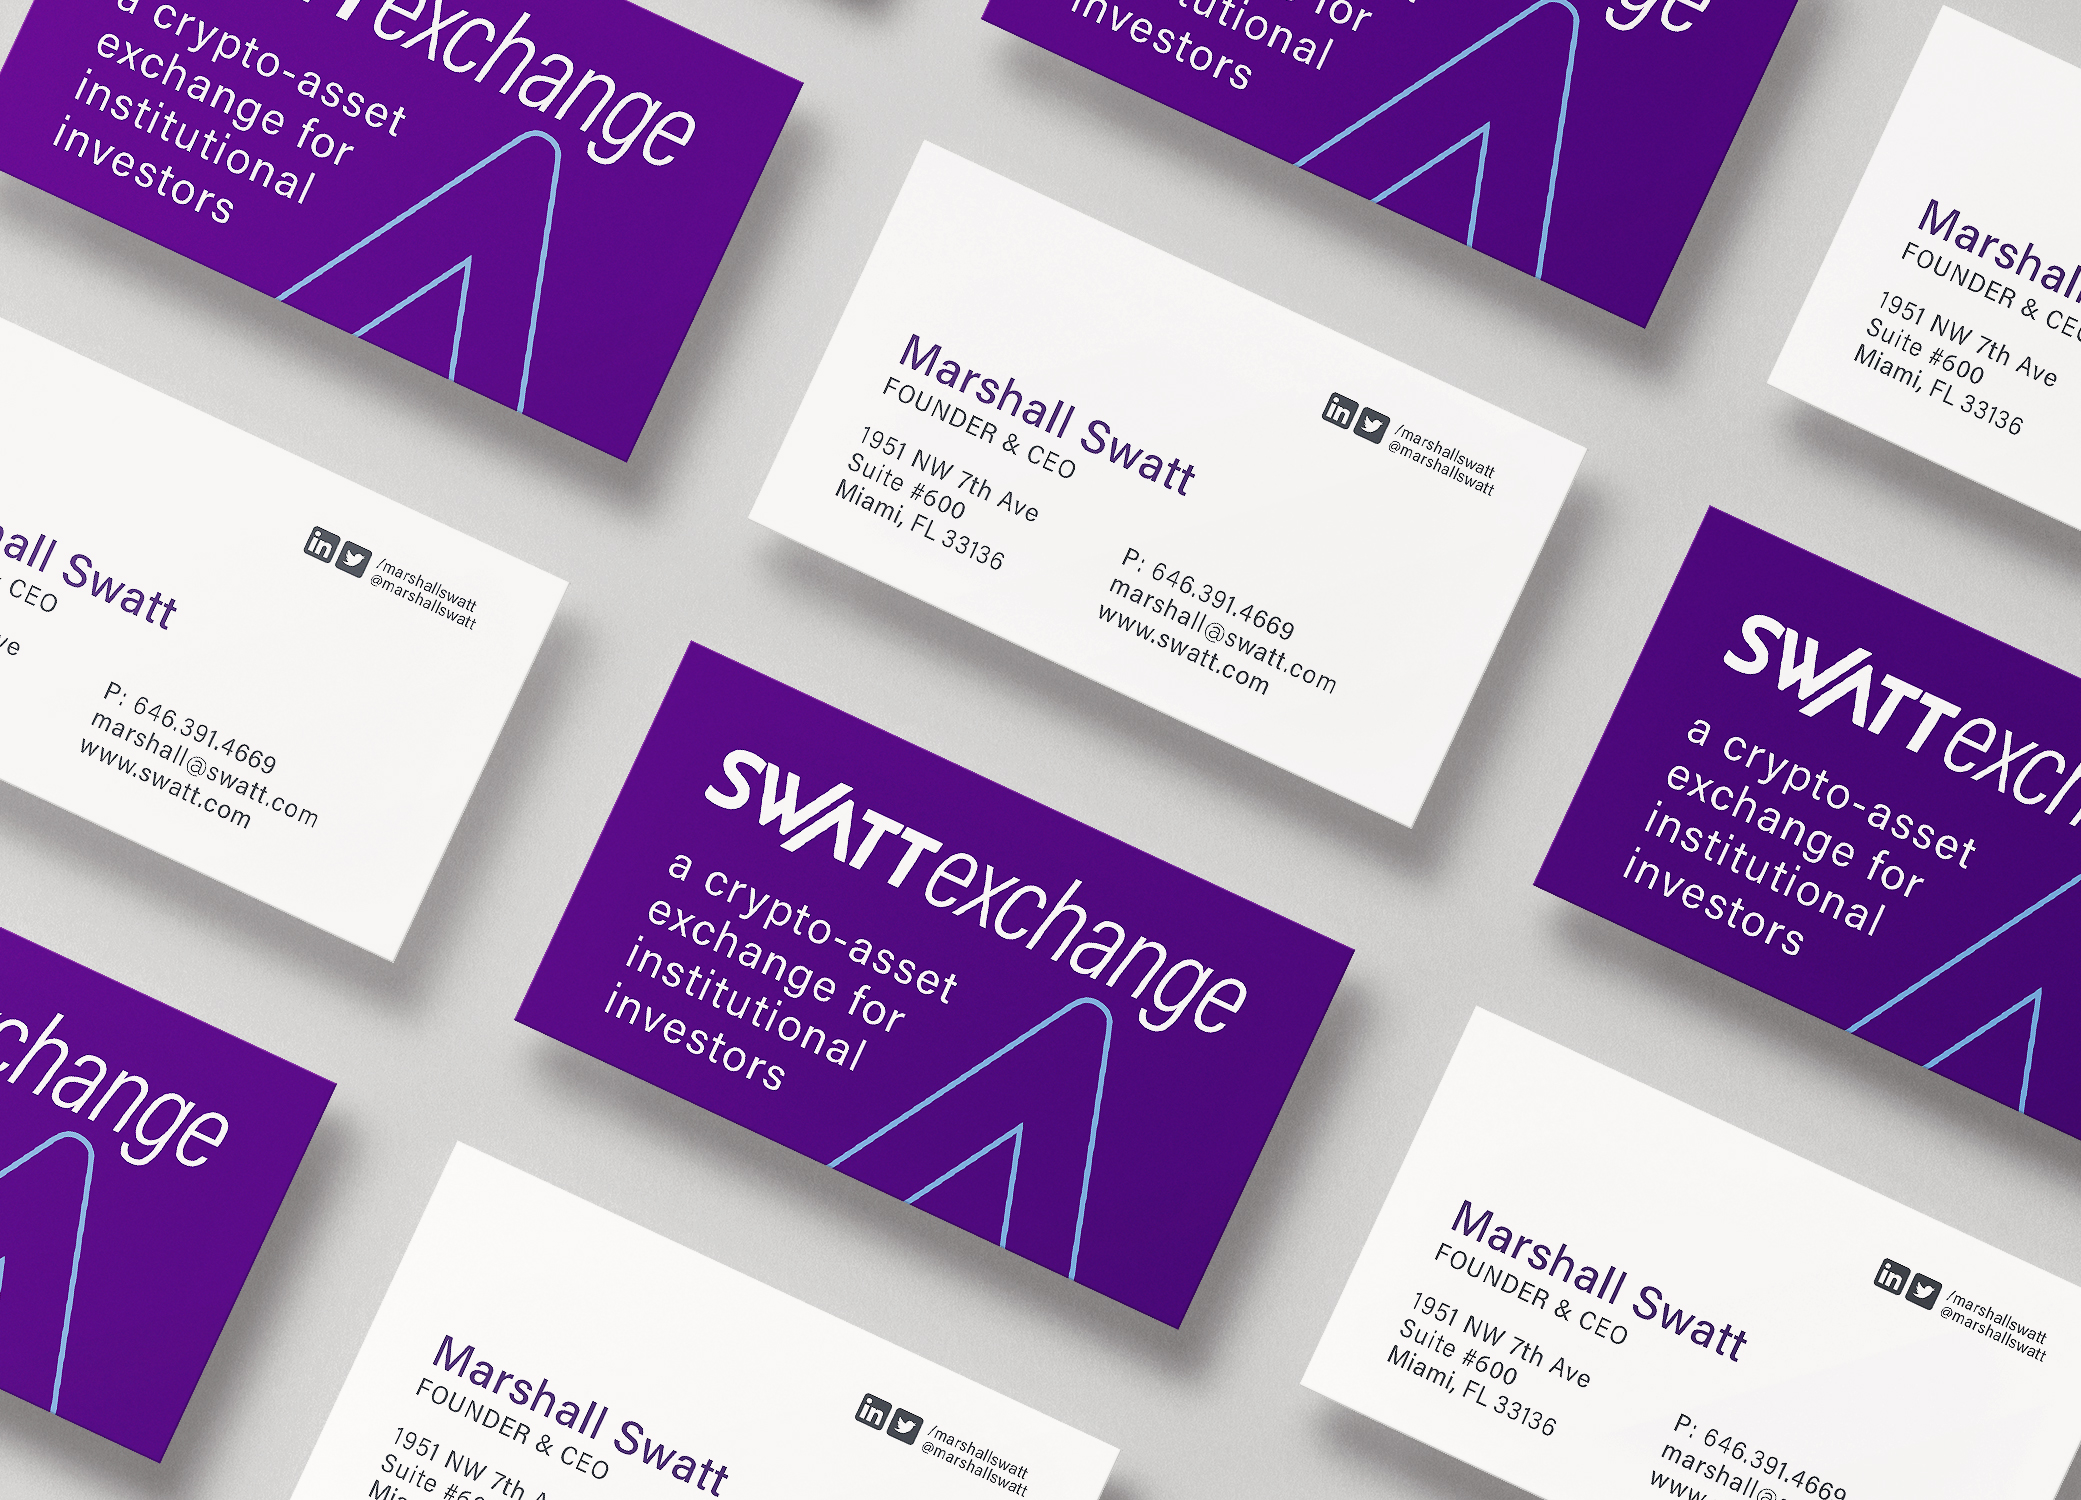 Swatt Exchange purple and white business cards arranged in diagonal rows to show front and back.